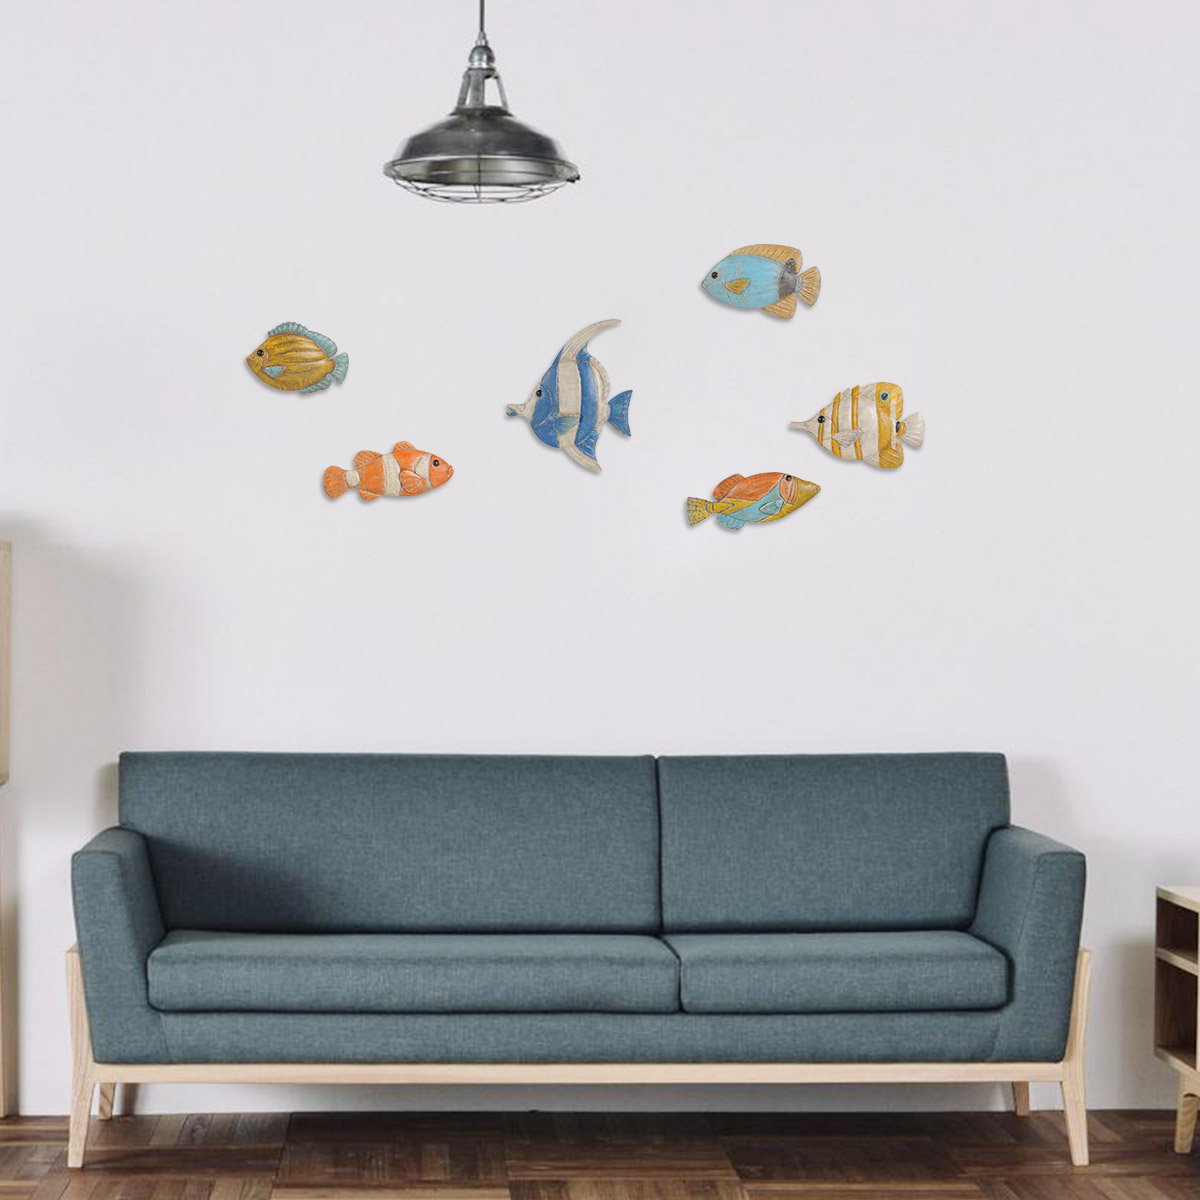 Fish Wall Hanging 1 Iron Wall Decor Creative Ornament Craft Wall Setting  Wall Hanging Marine Life